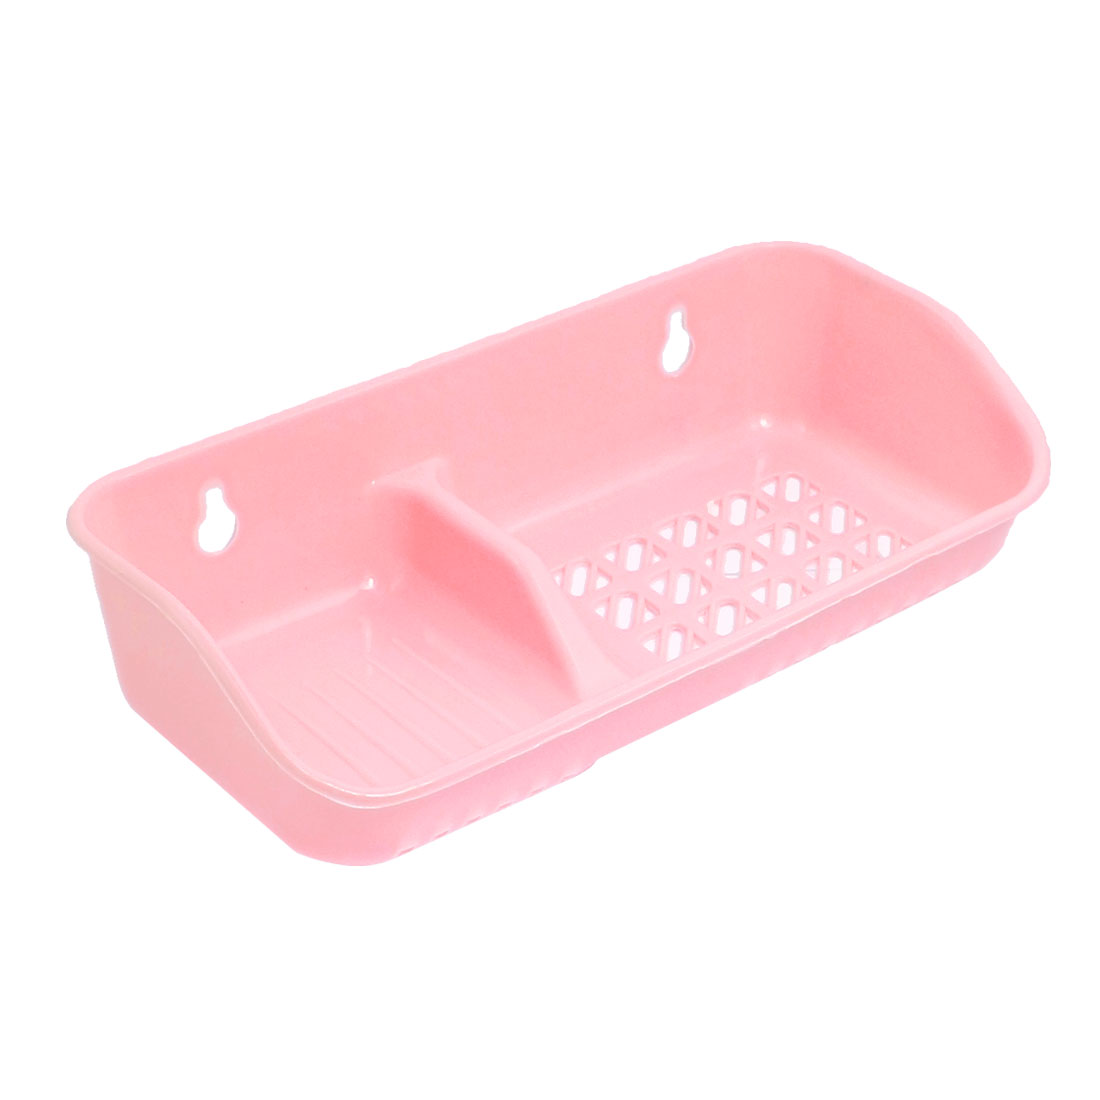 Pale Pink Plastic Wall Mount Soap Dish Holder w 2 Suction Cups